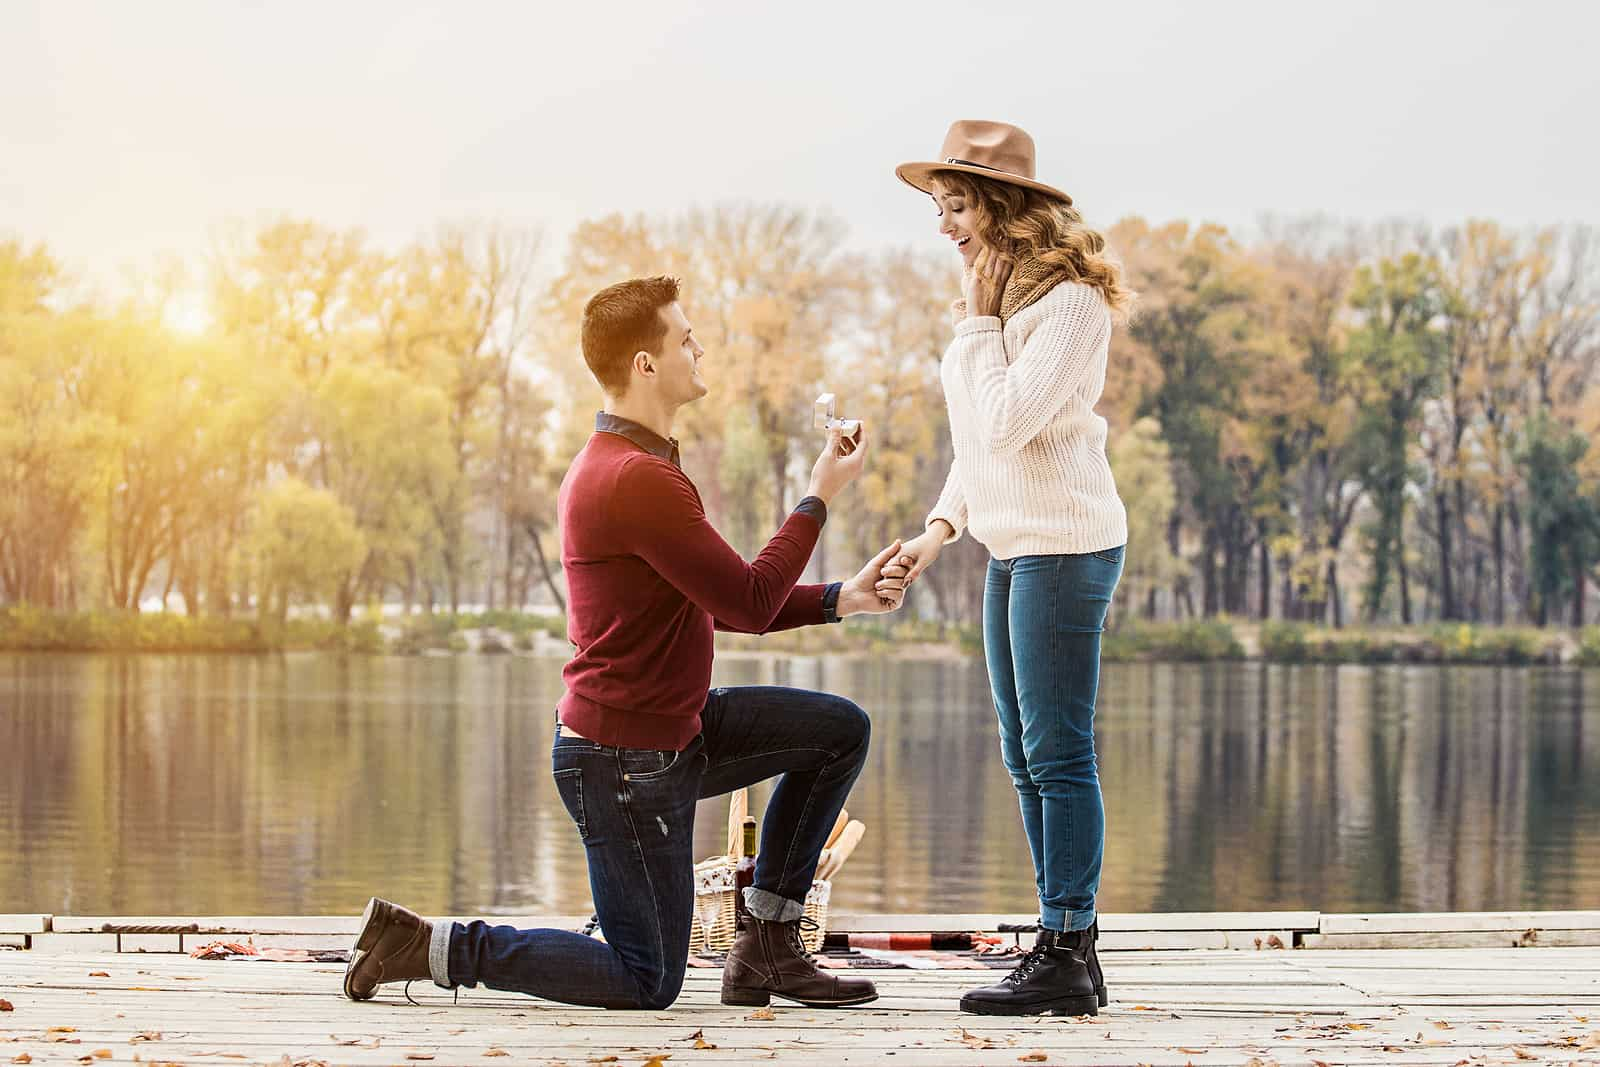 10 Creative Proposal Ideas Just In Time For Valentine's Day